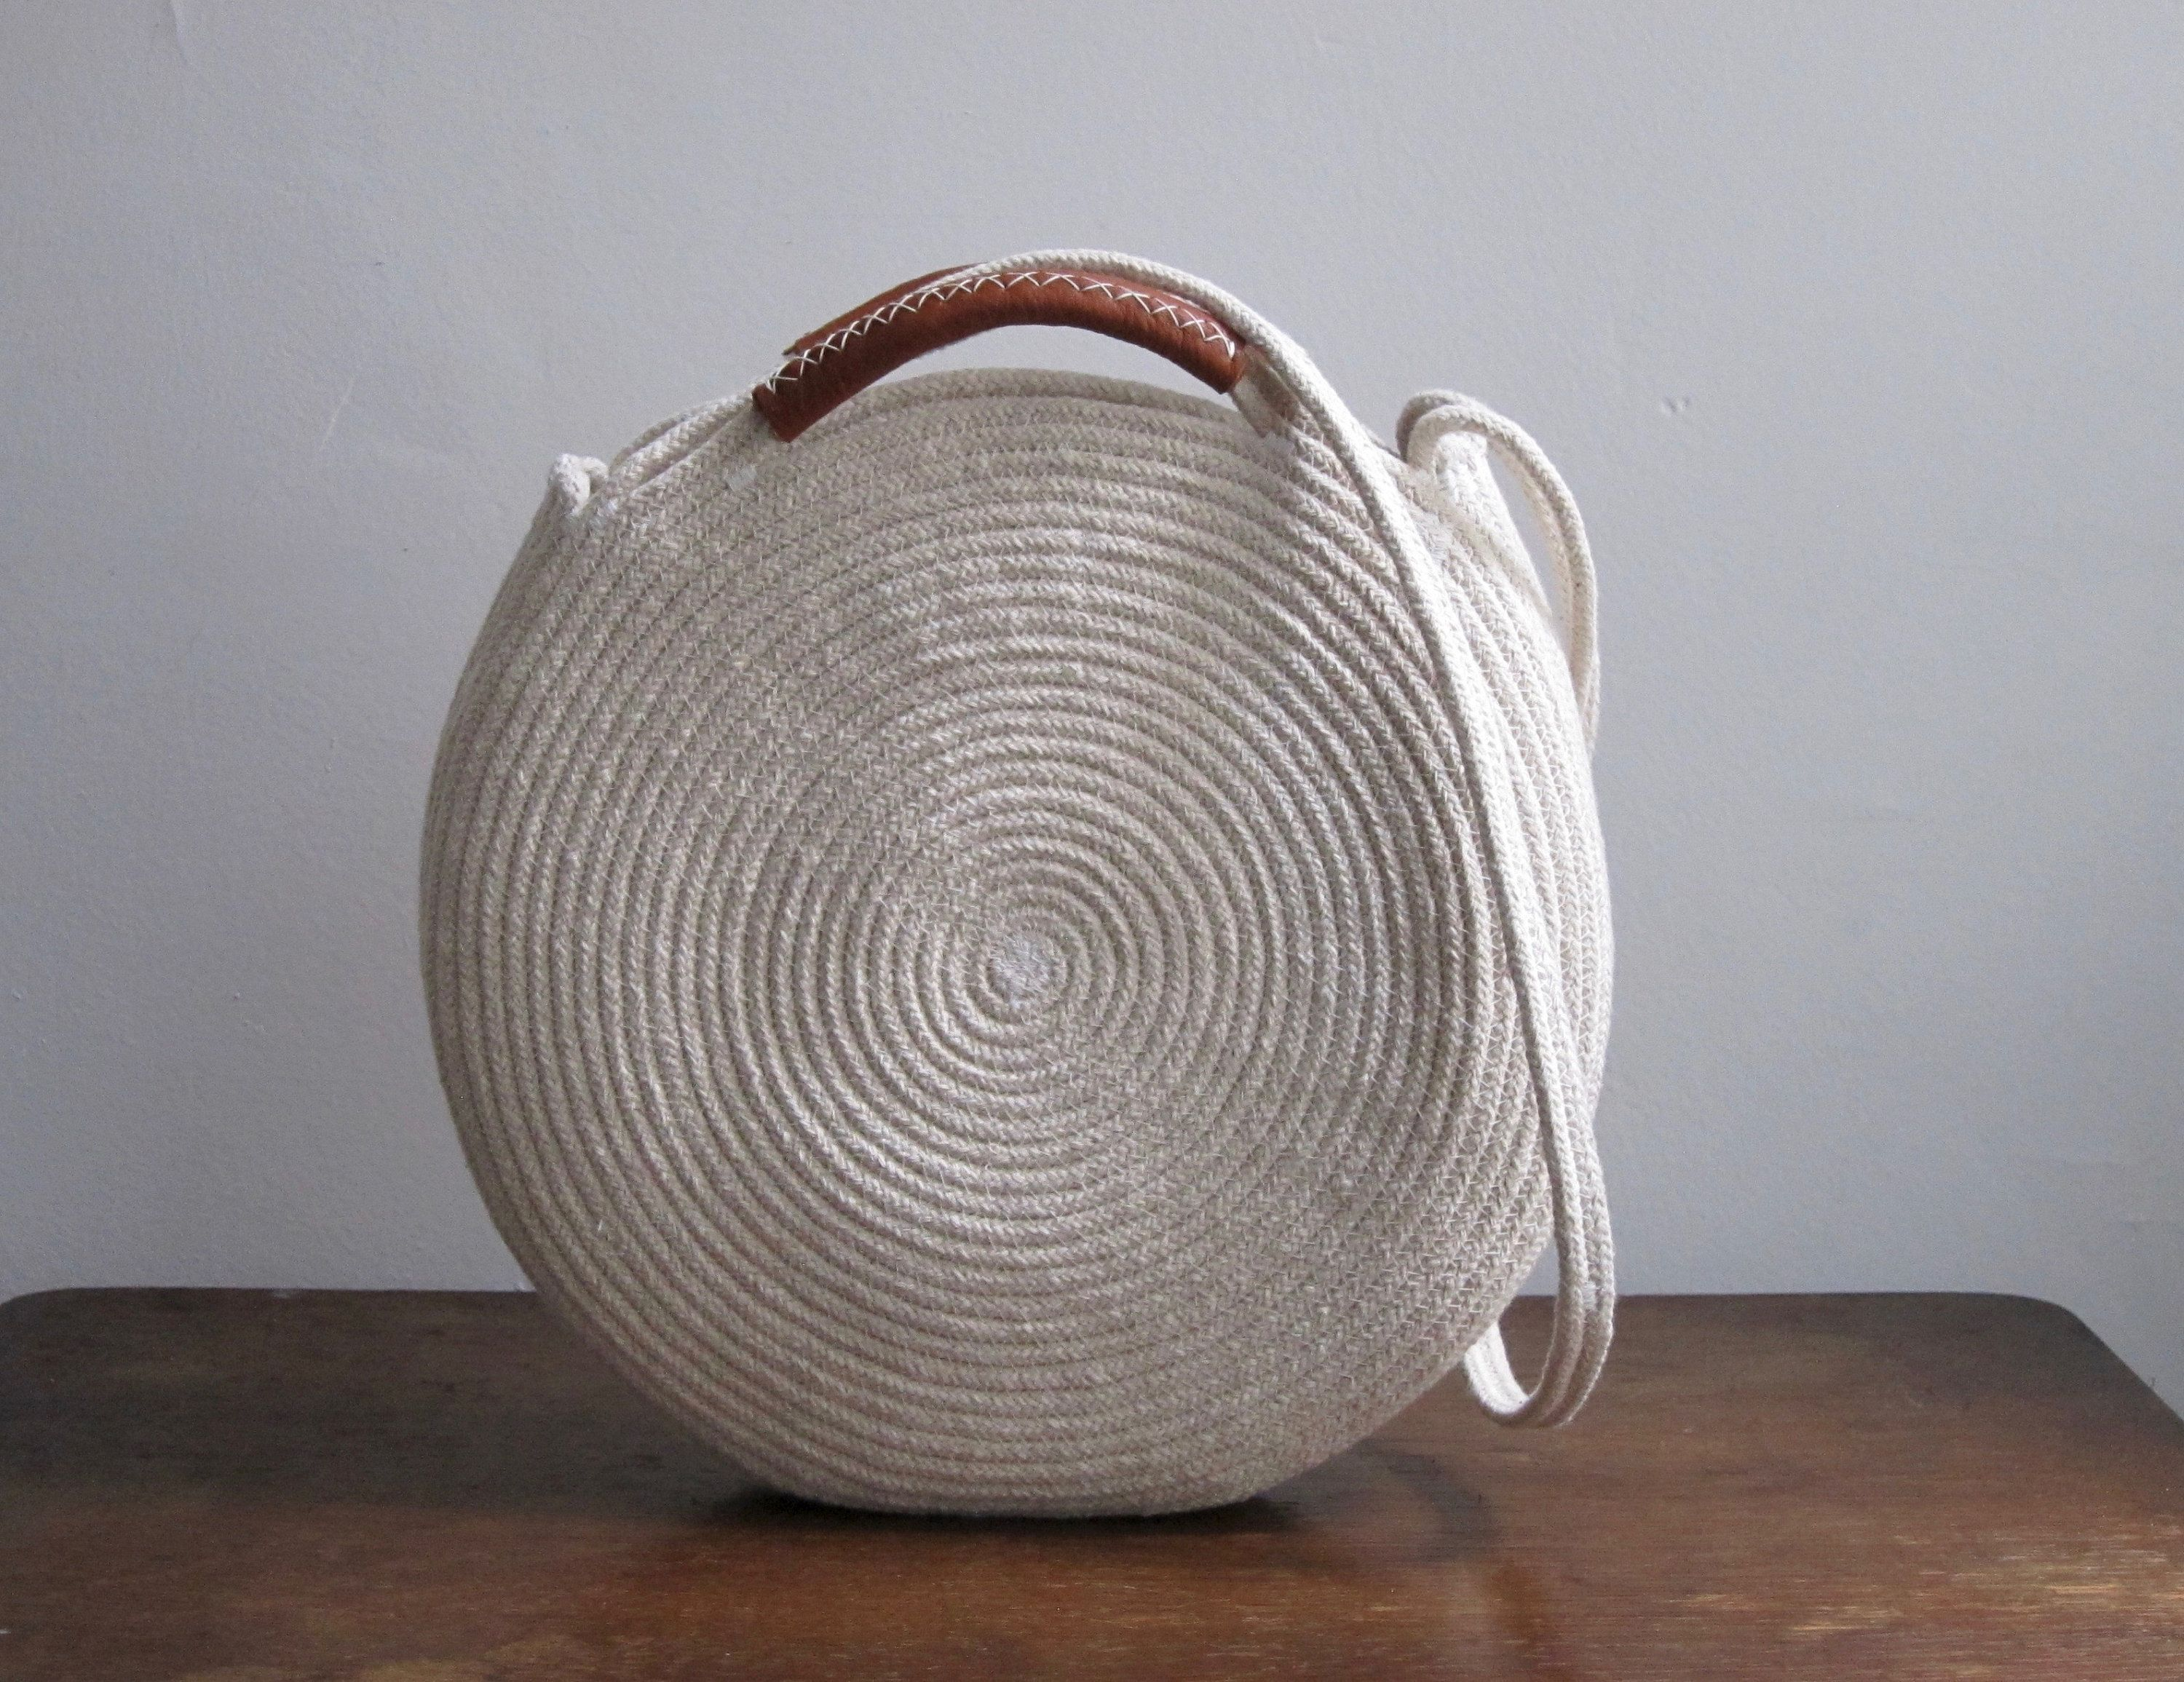 e65abcaa19c5 Round Basket Bag with Leather Top Handles and Shoulder Strap | One ...